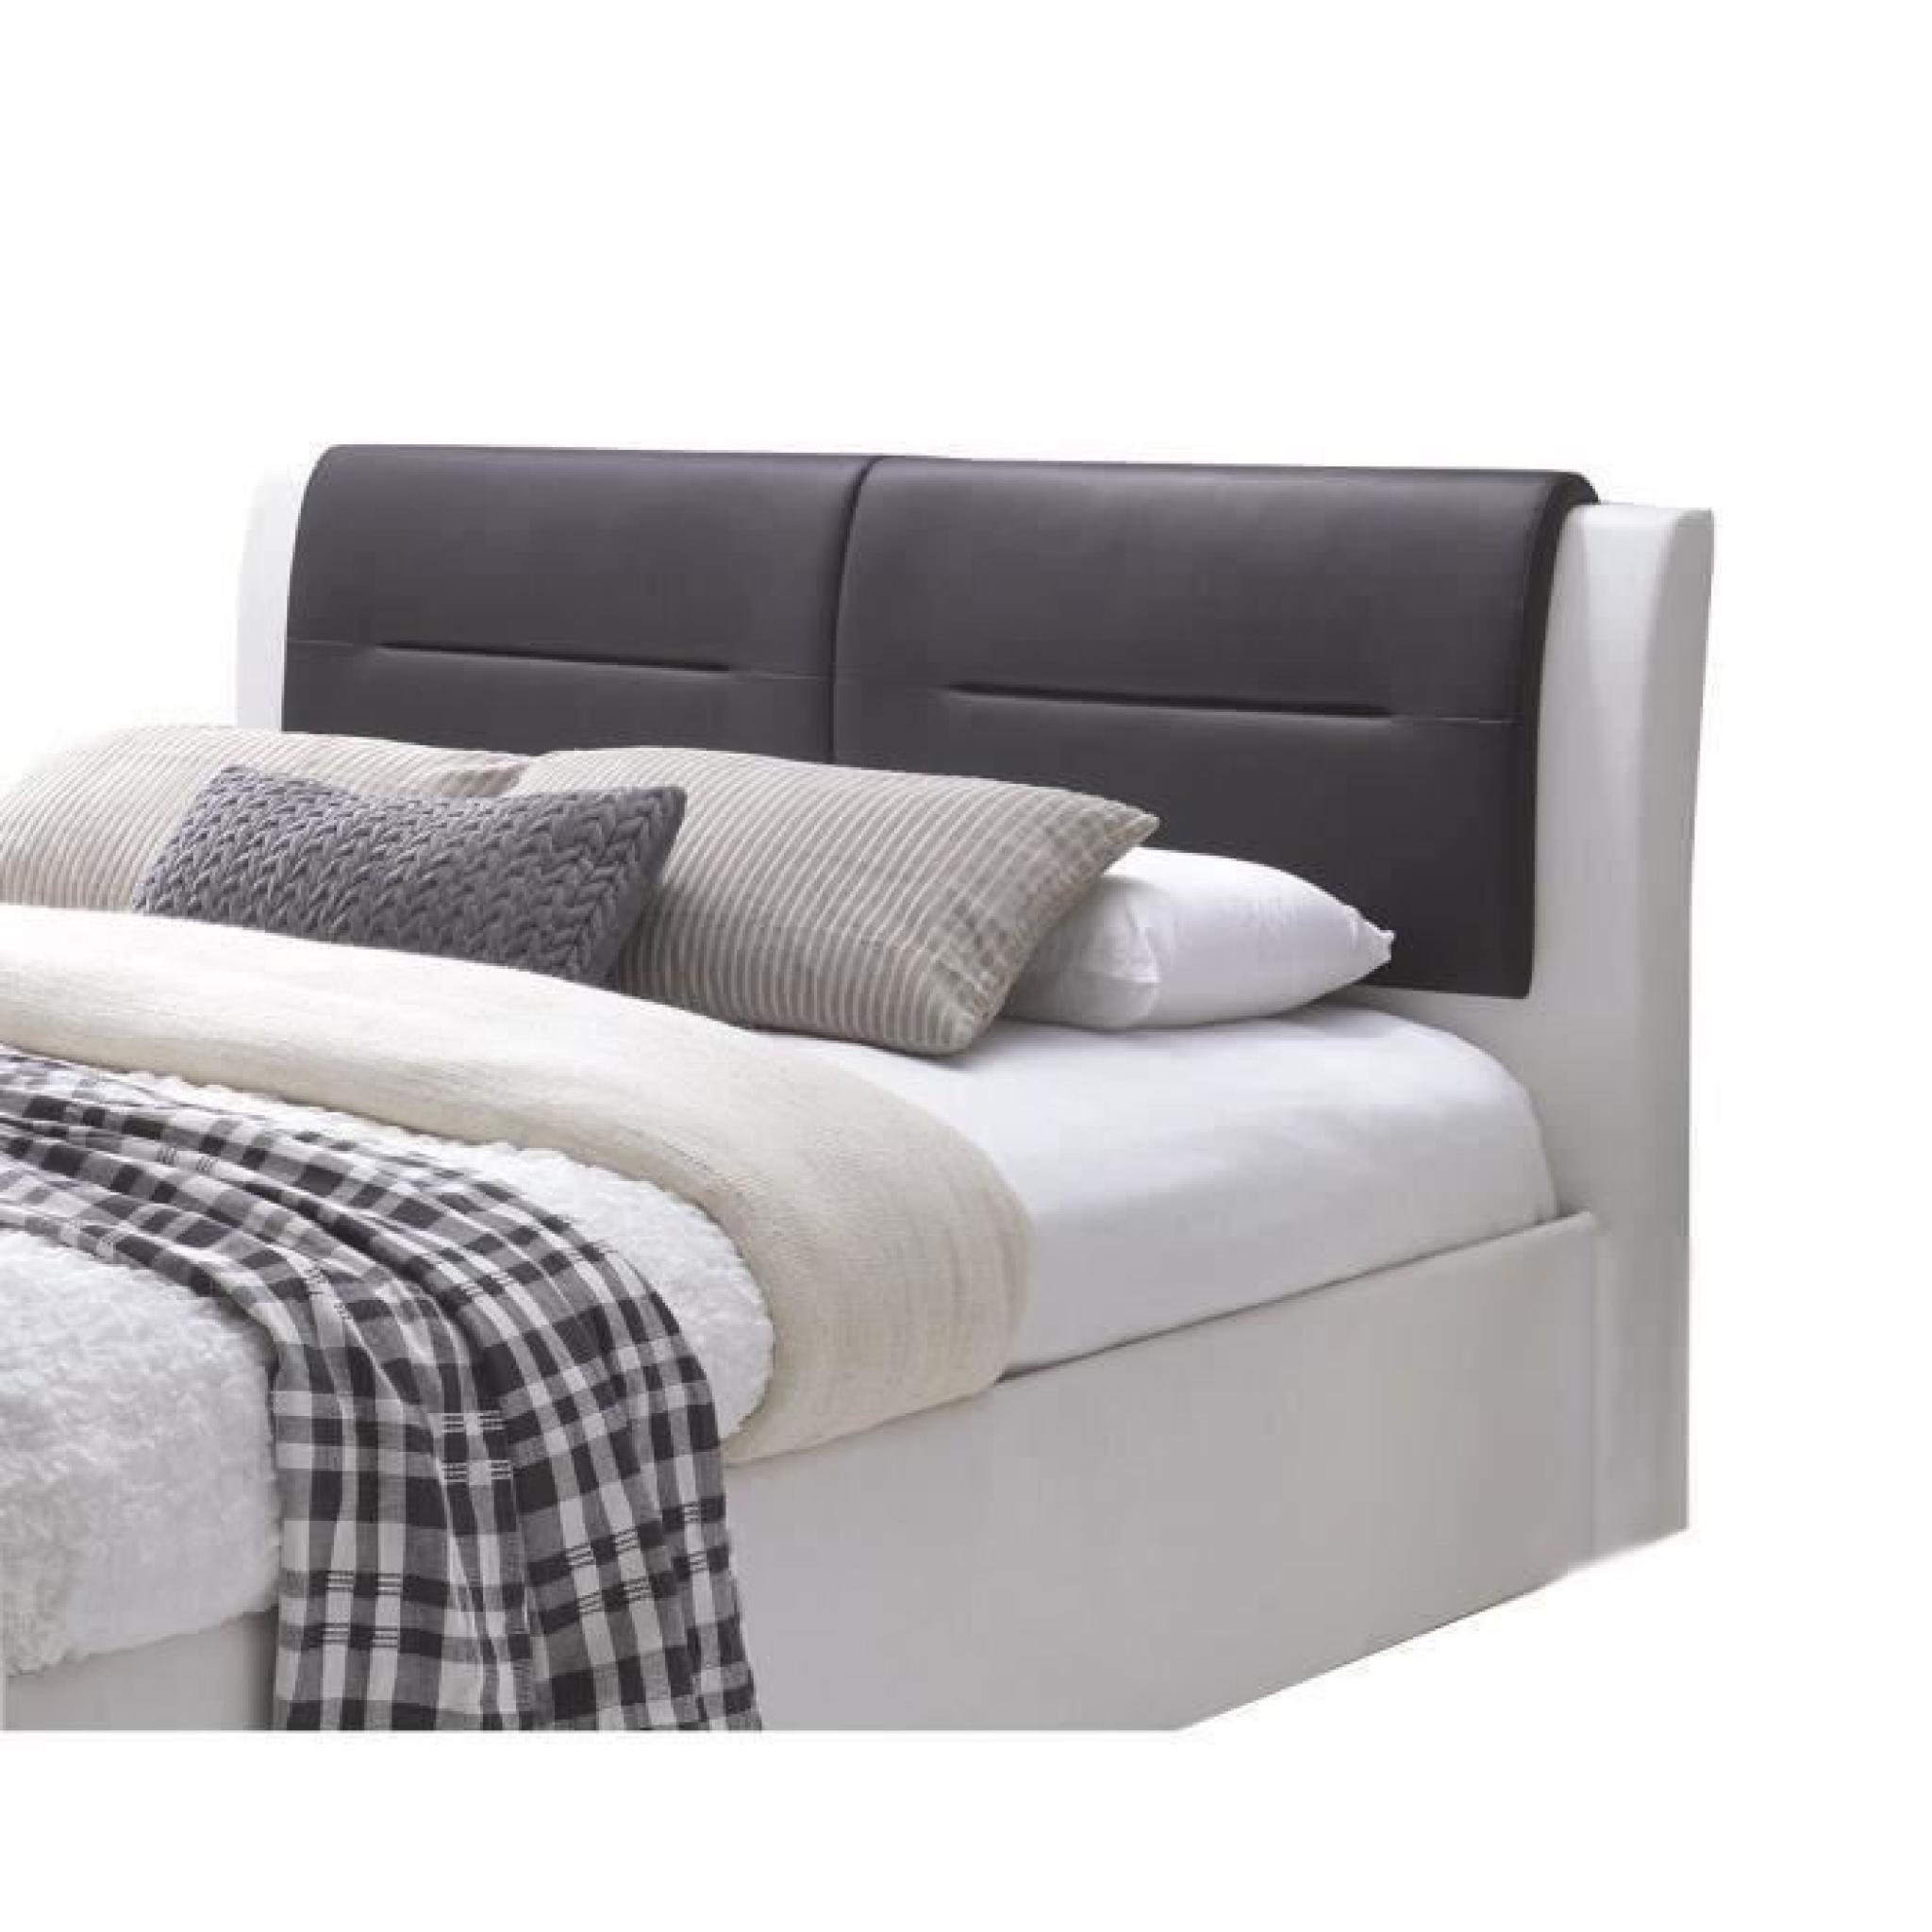 lit solde adulte good lit coffre avec matelas et sur. Black Bedroom Furniture Sets. Home Design Ideas